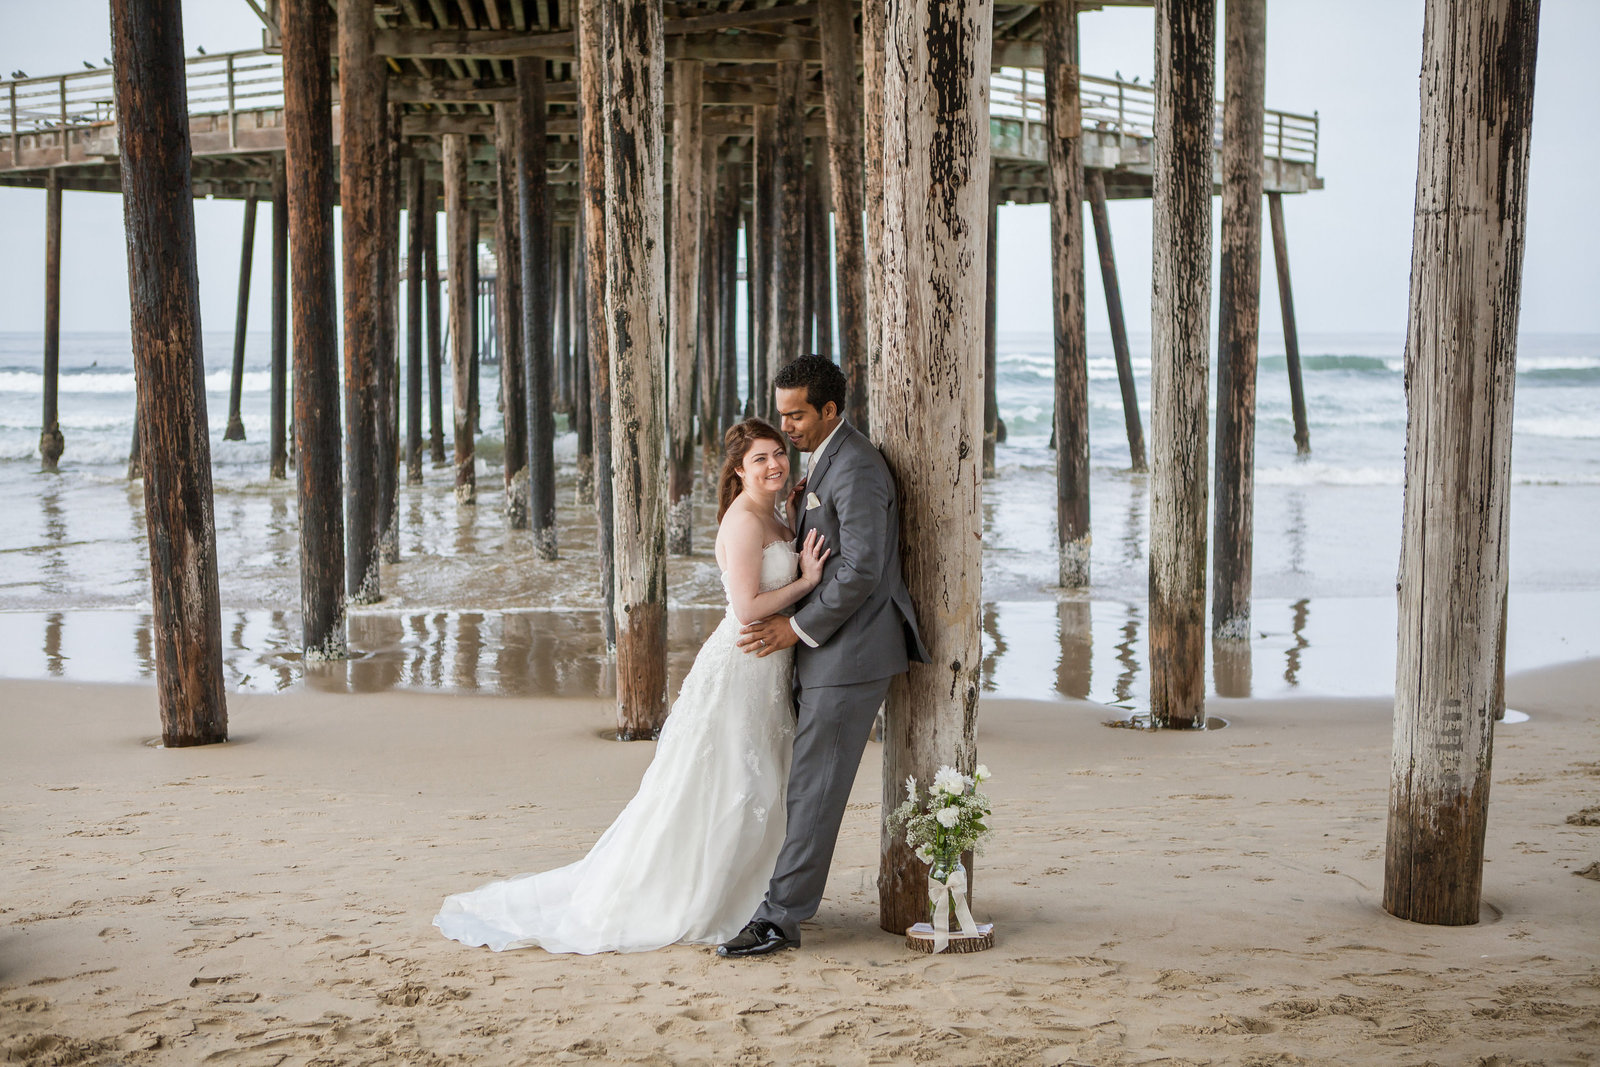 Pismo Beach Bride and Groom Portrait intimate wedding